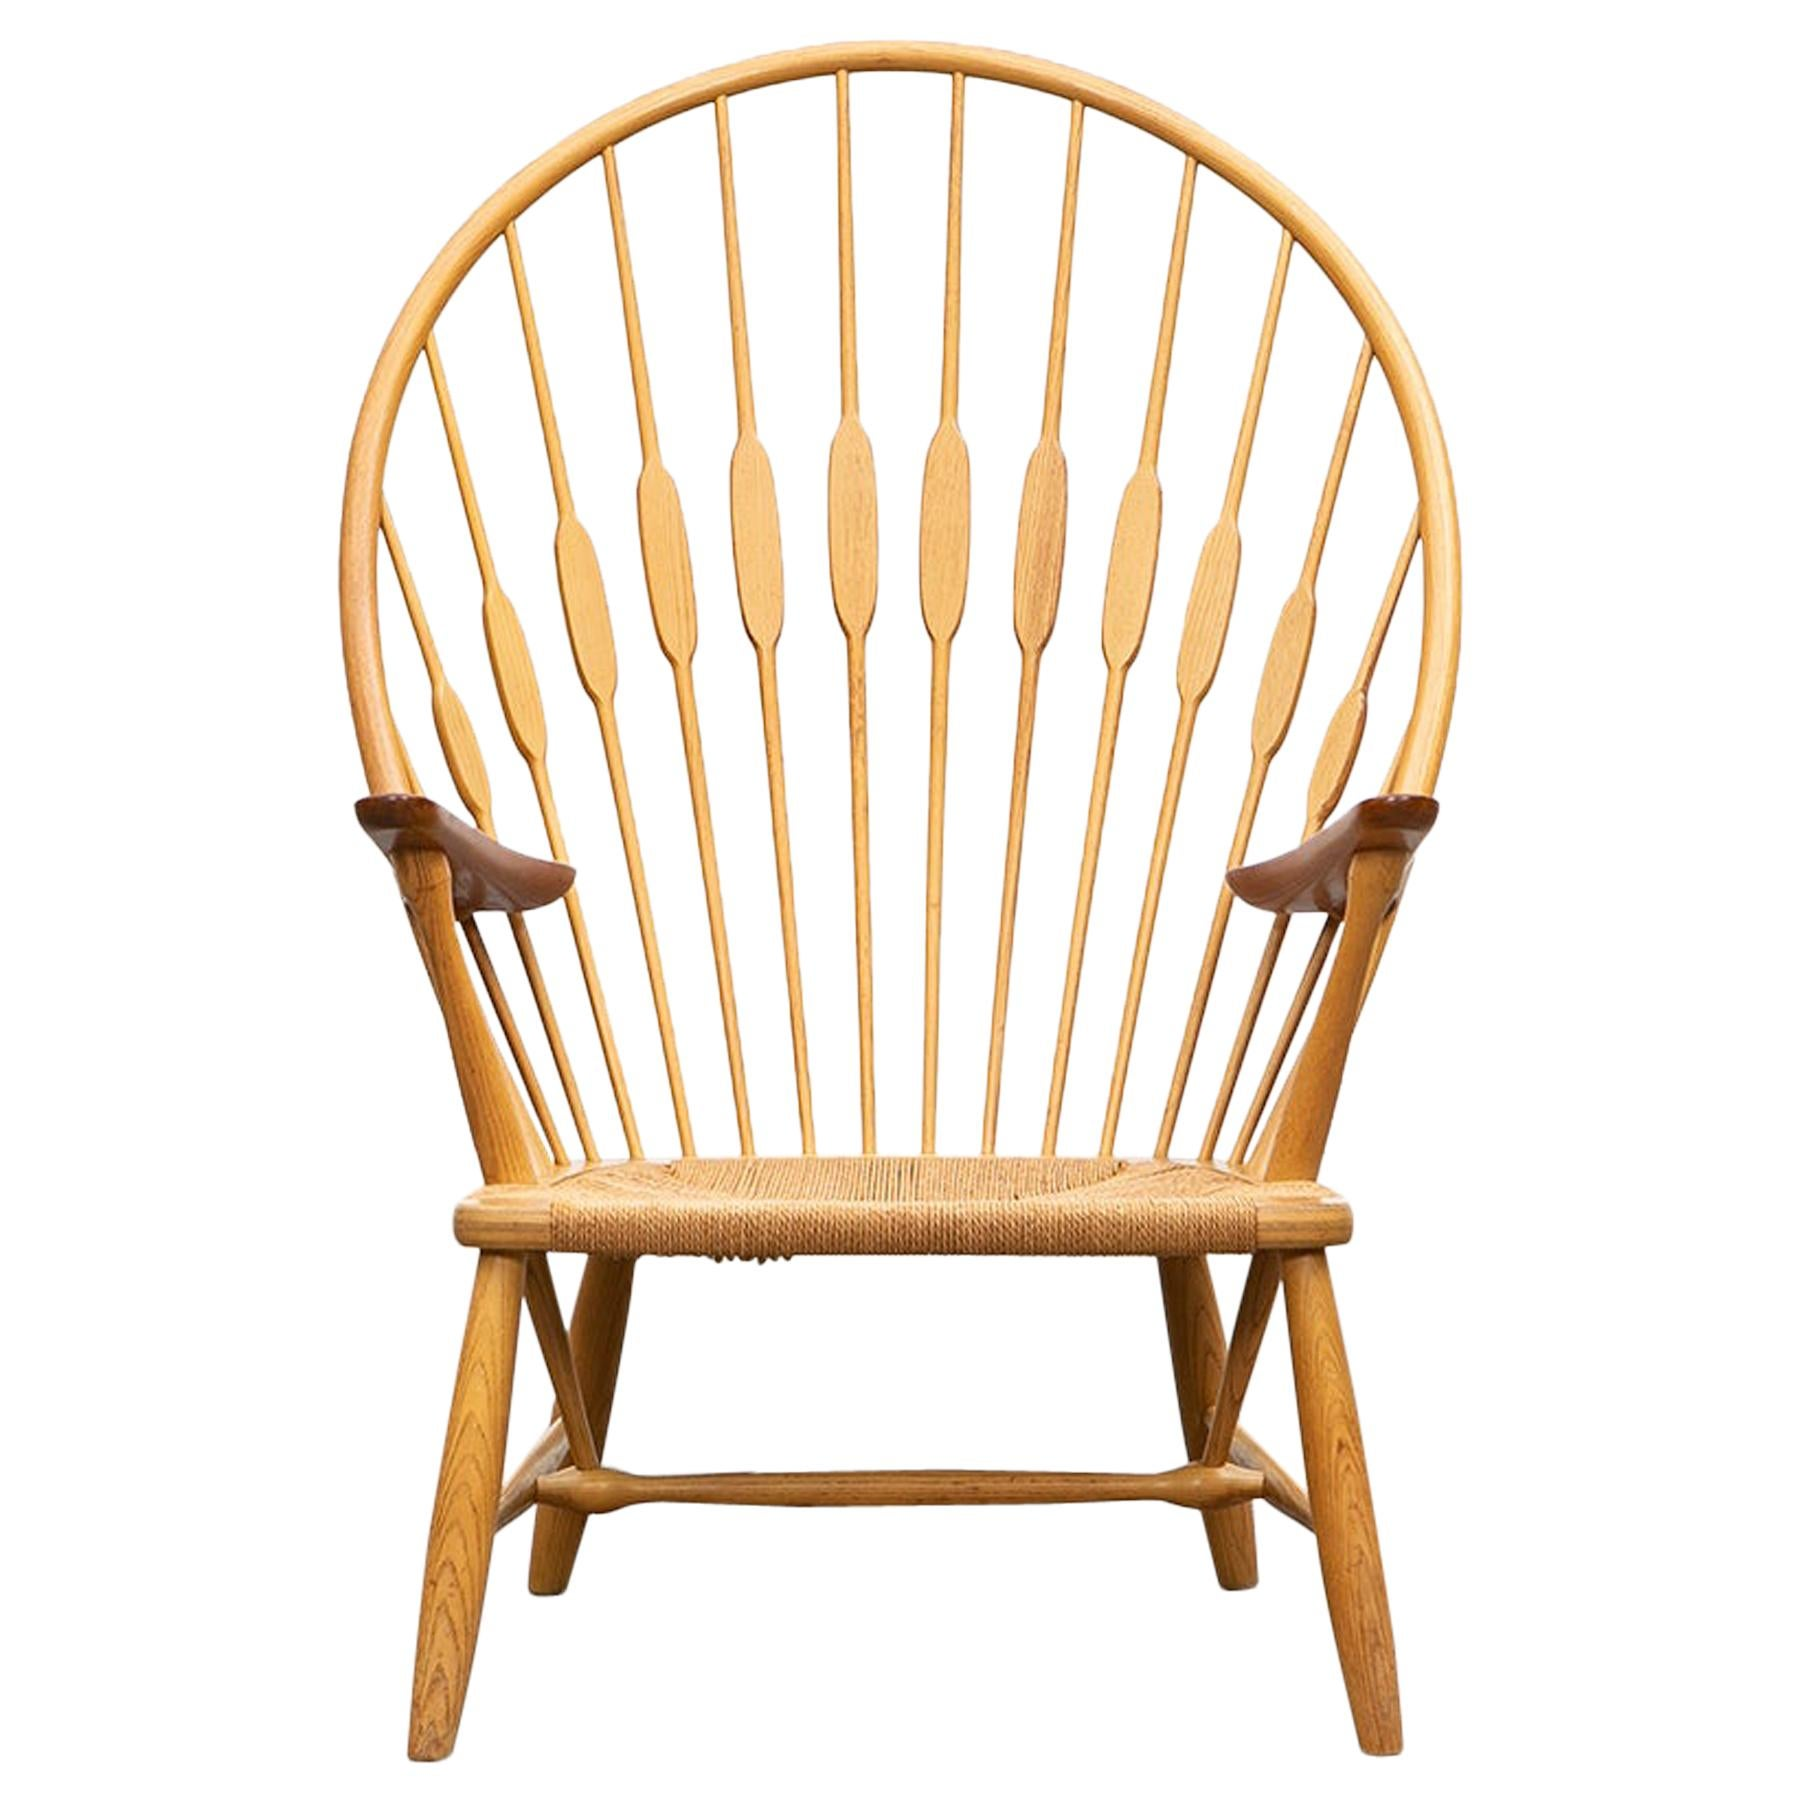 1940s Brown Ash and Papercord Peacock Chair by Hans Wegner